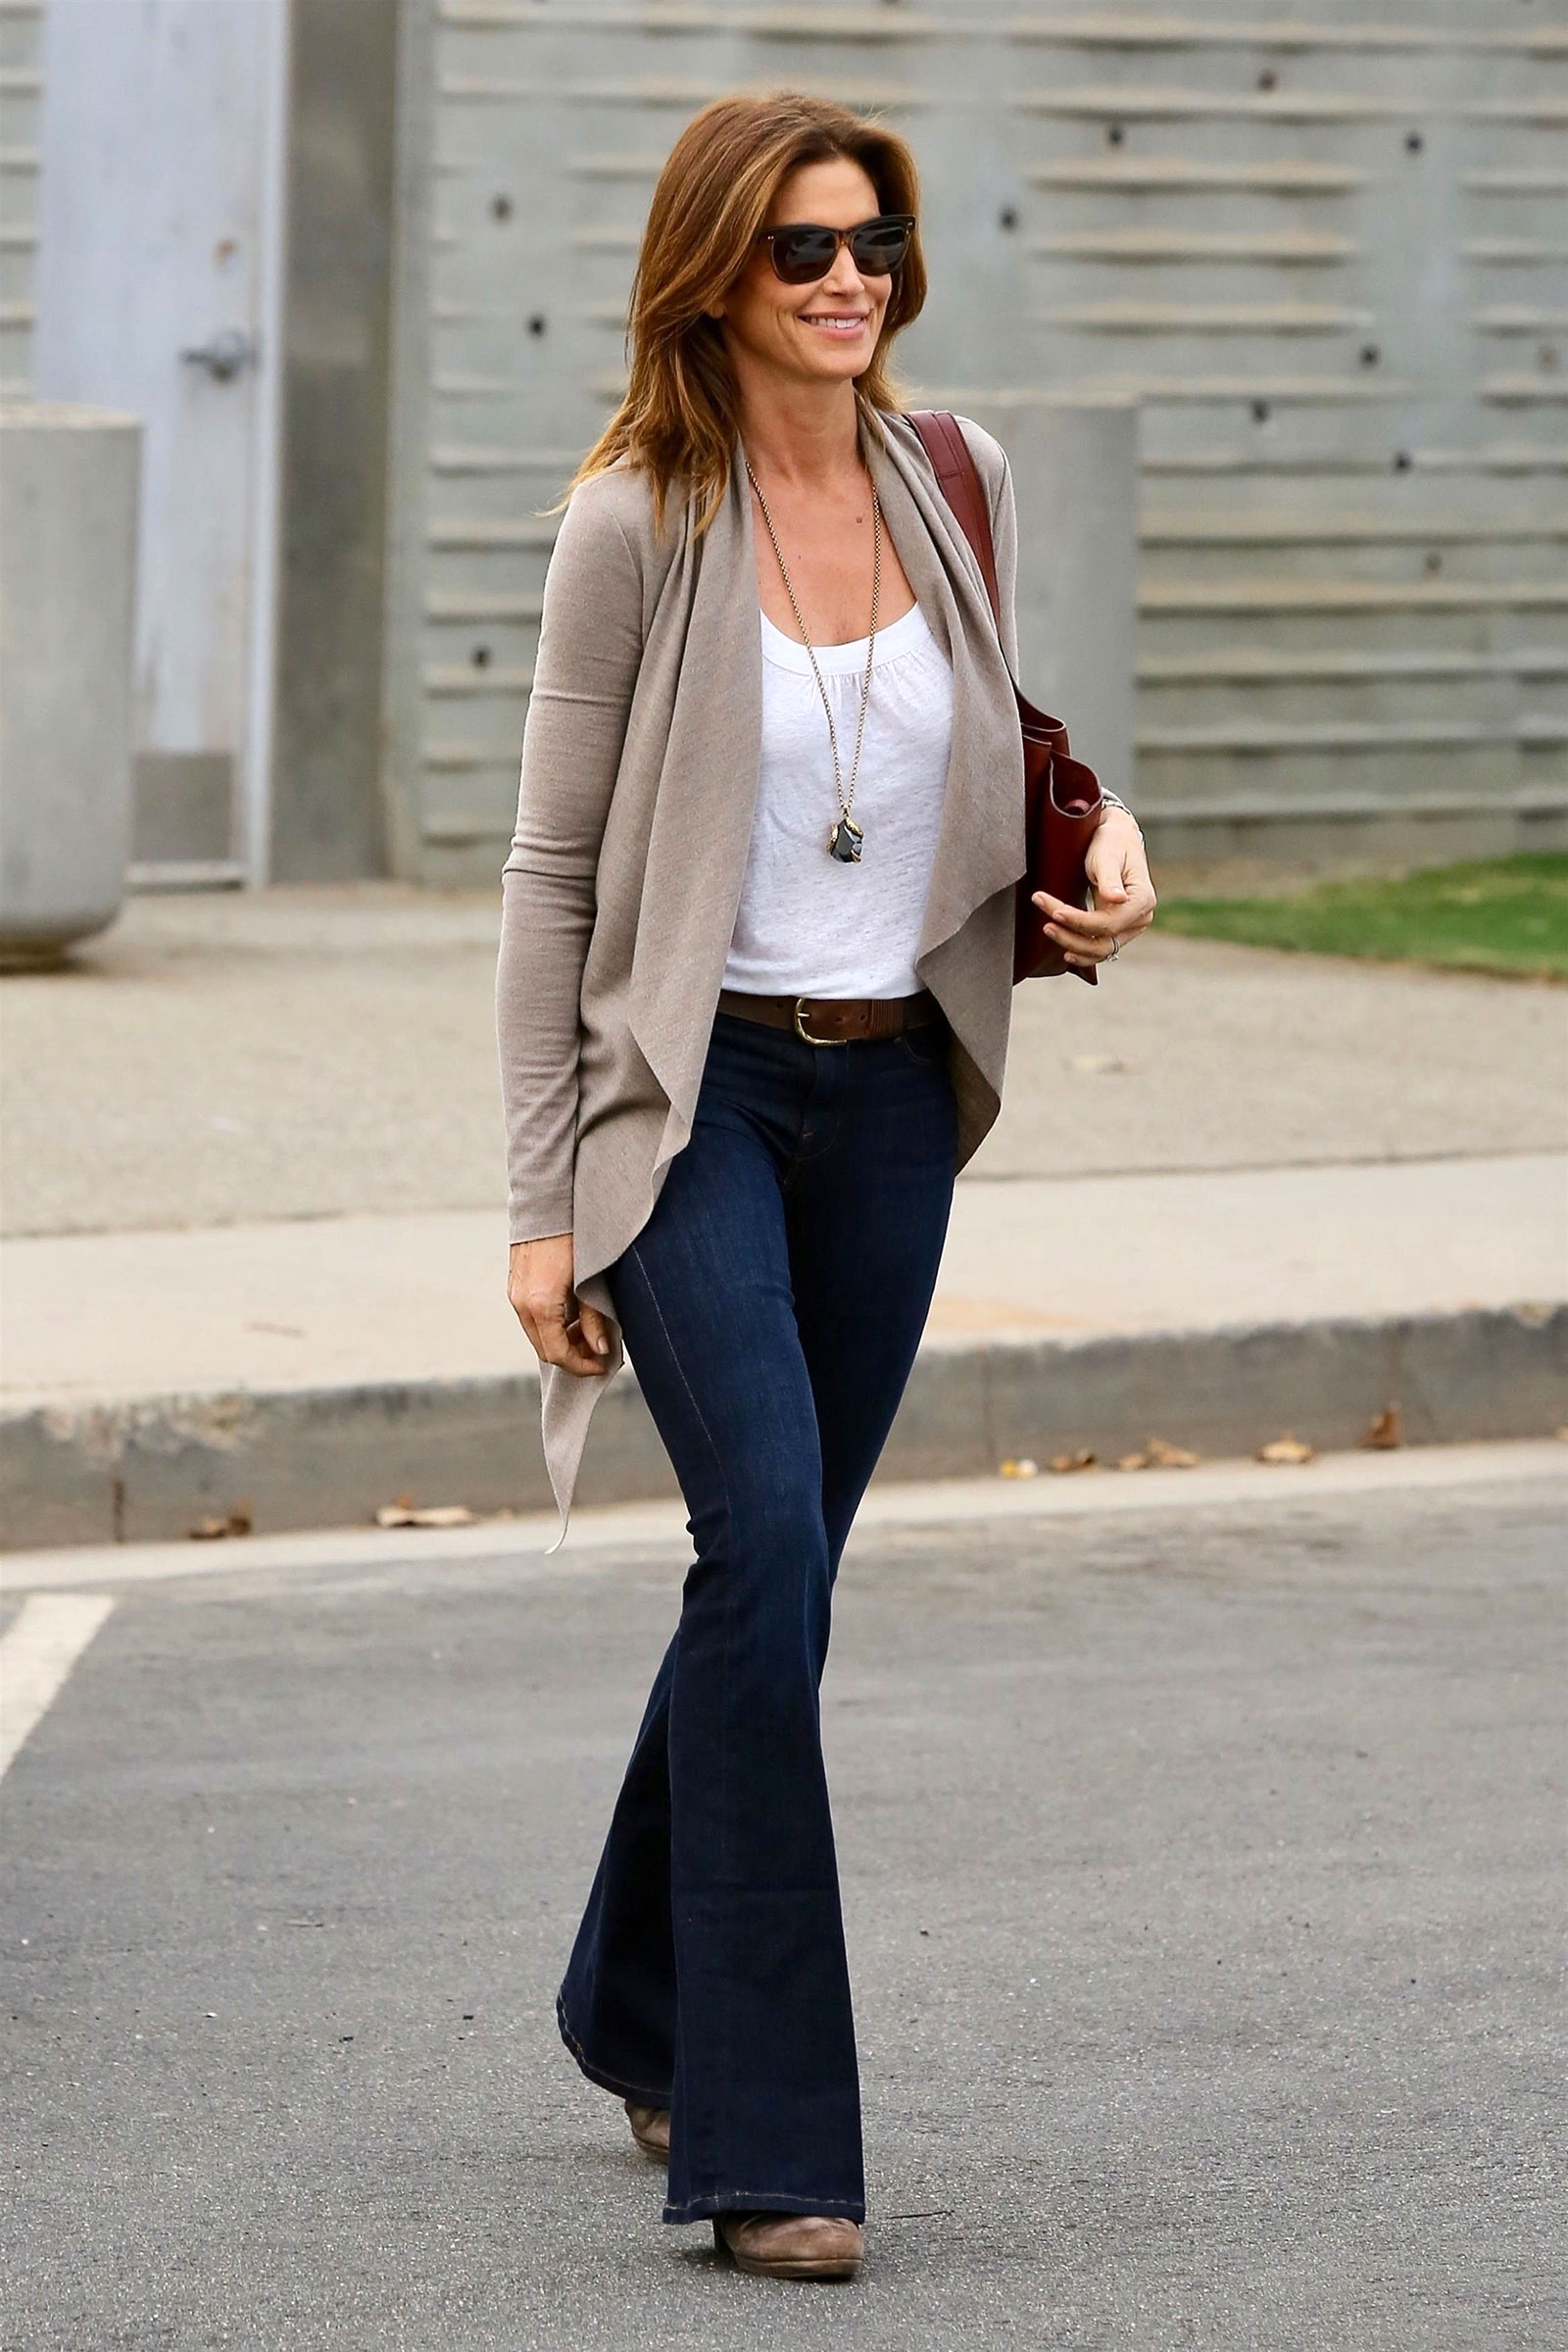 0b20b7d7f0 Cindy Crawford looks stylish in a beige cardigan and flare leg jeans while  running errands in